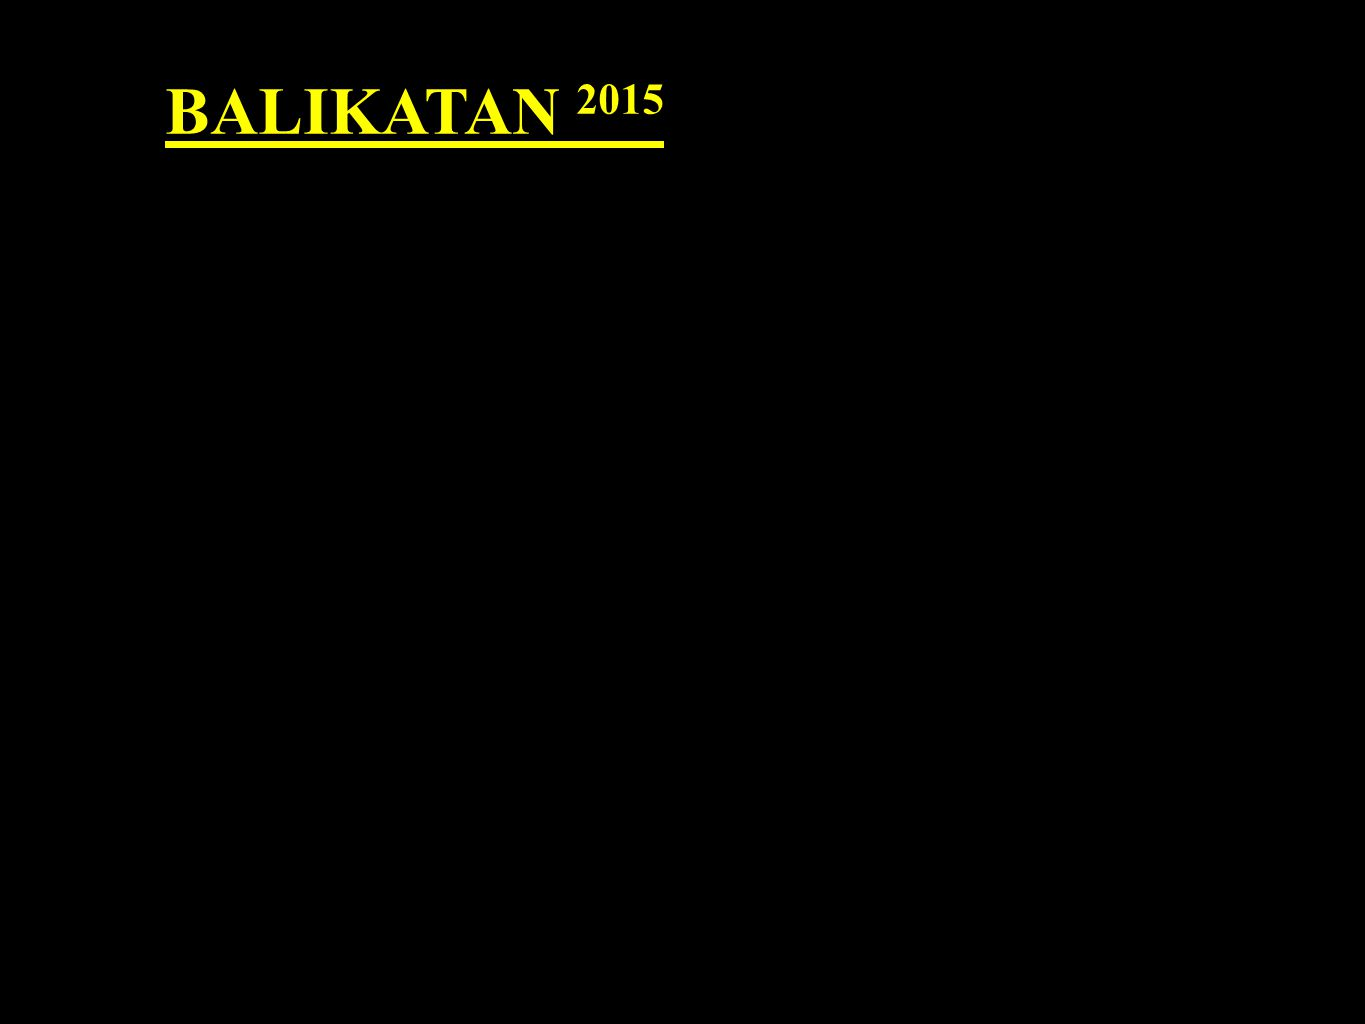 BALIKATAN 2015 TRY LANE Try Lane is the lane of your direct to downline.